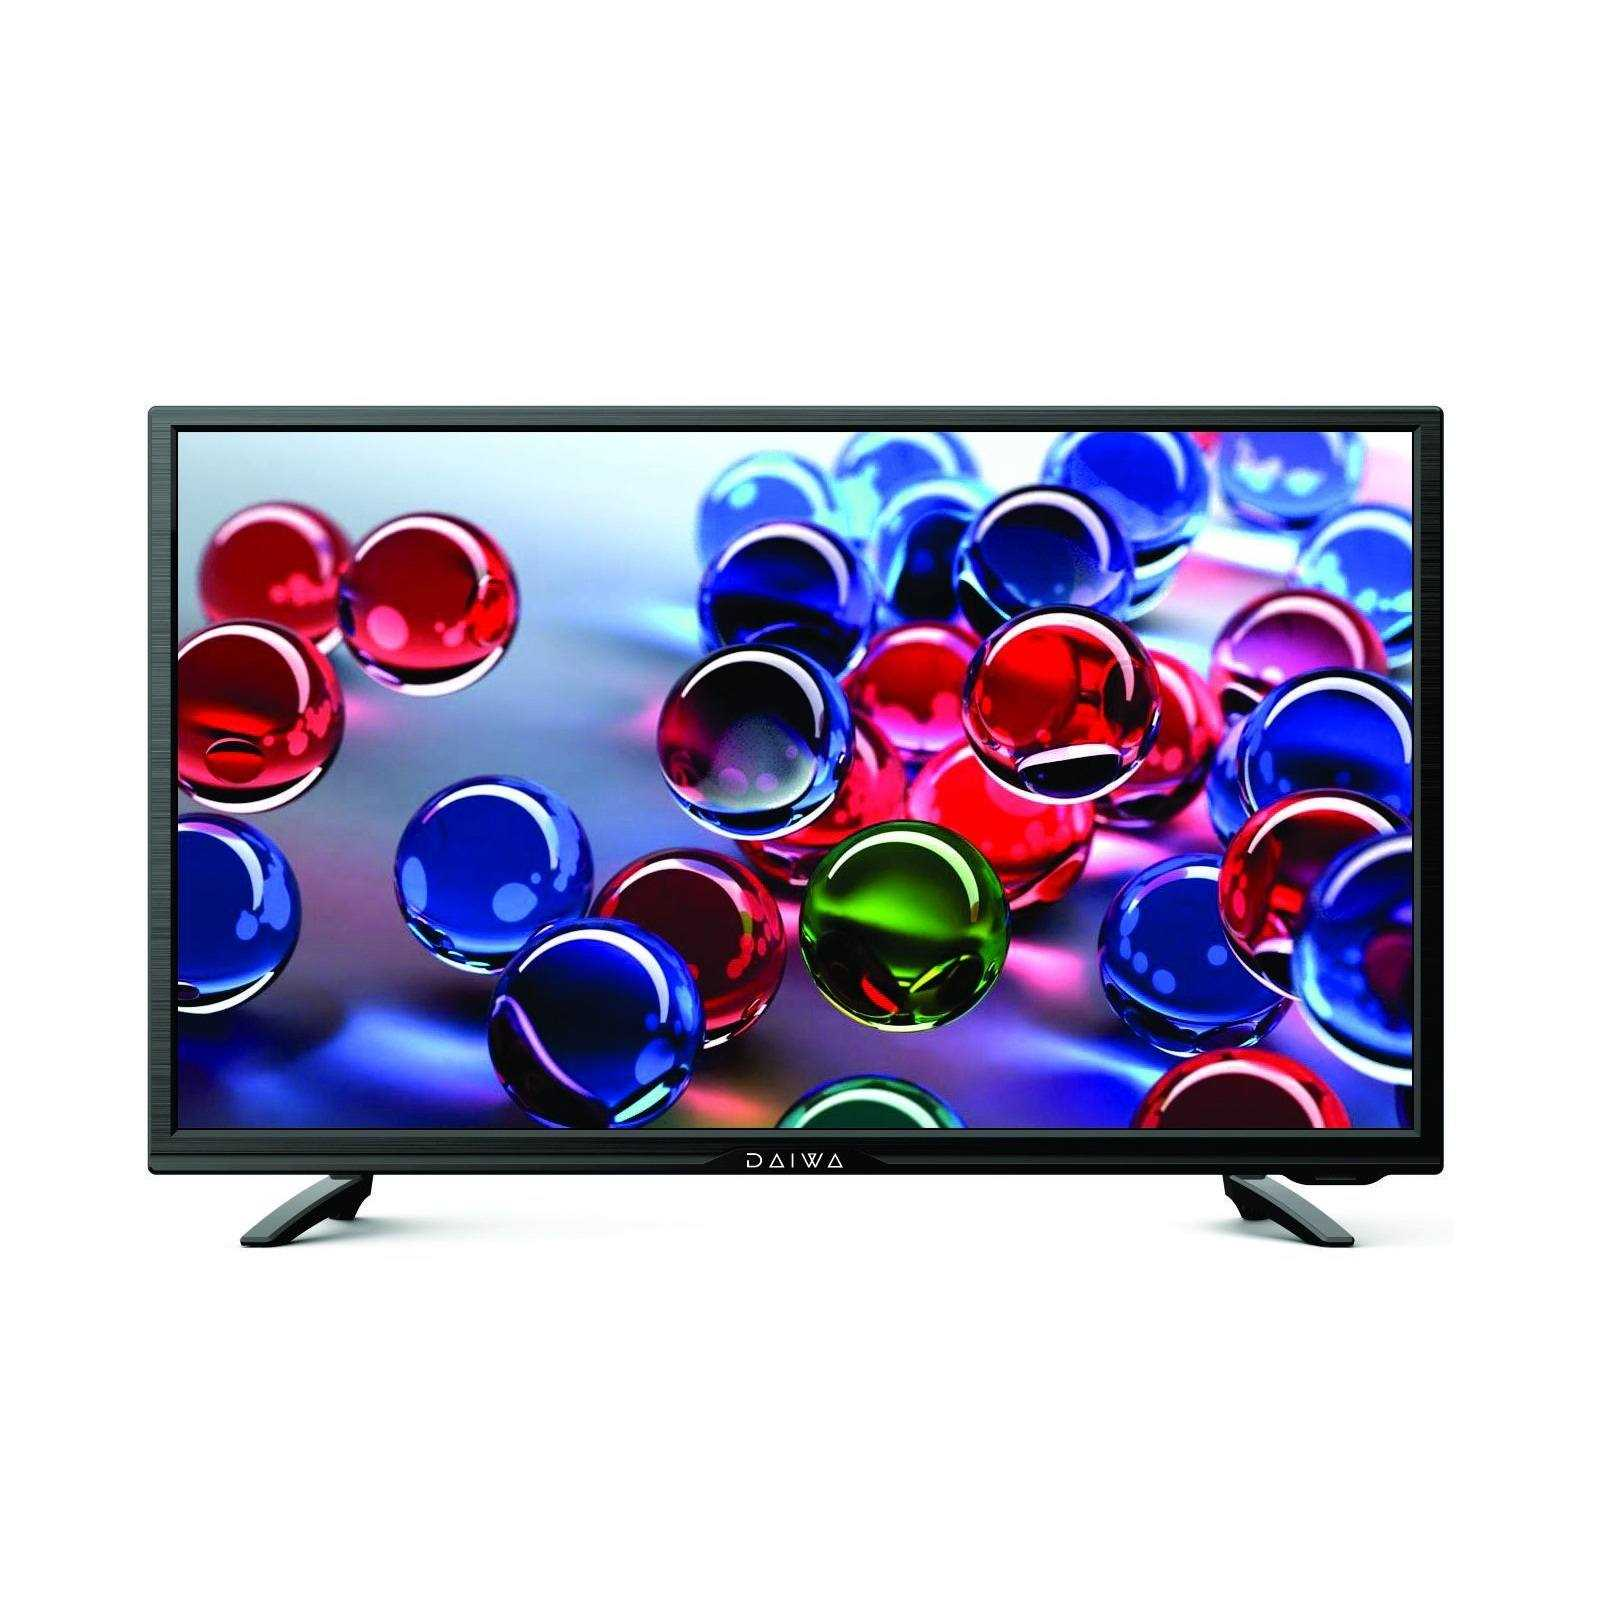 23ca7f175 Daiwa D32C2 32 Inch HD Ready LED Television Price  26 Apr 2019 ...